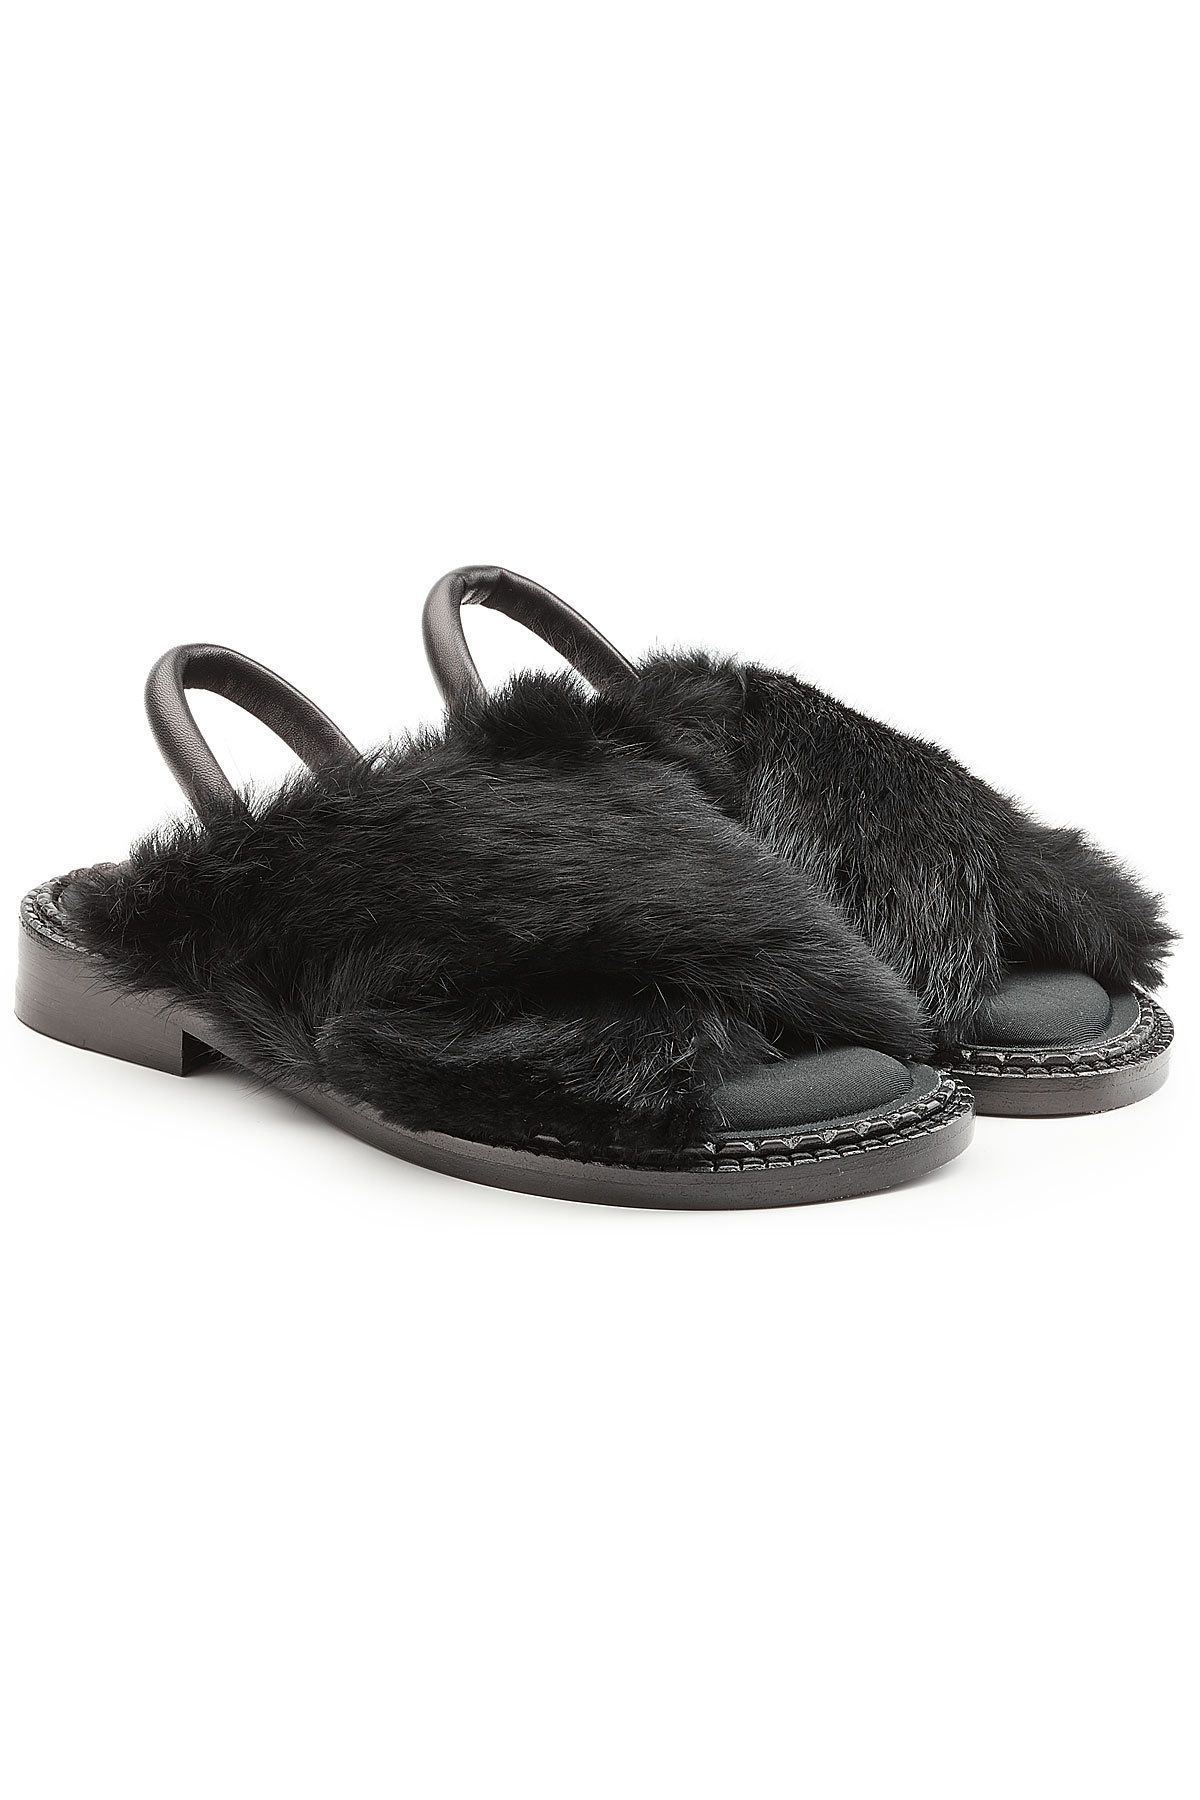 Robert Clergerie Leather Sandals with Rabbit Fur Outlet With Paypal Cheap Clearance Store Order KbX1y